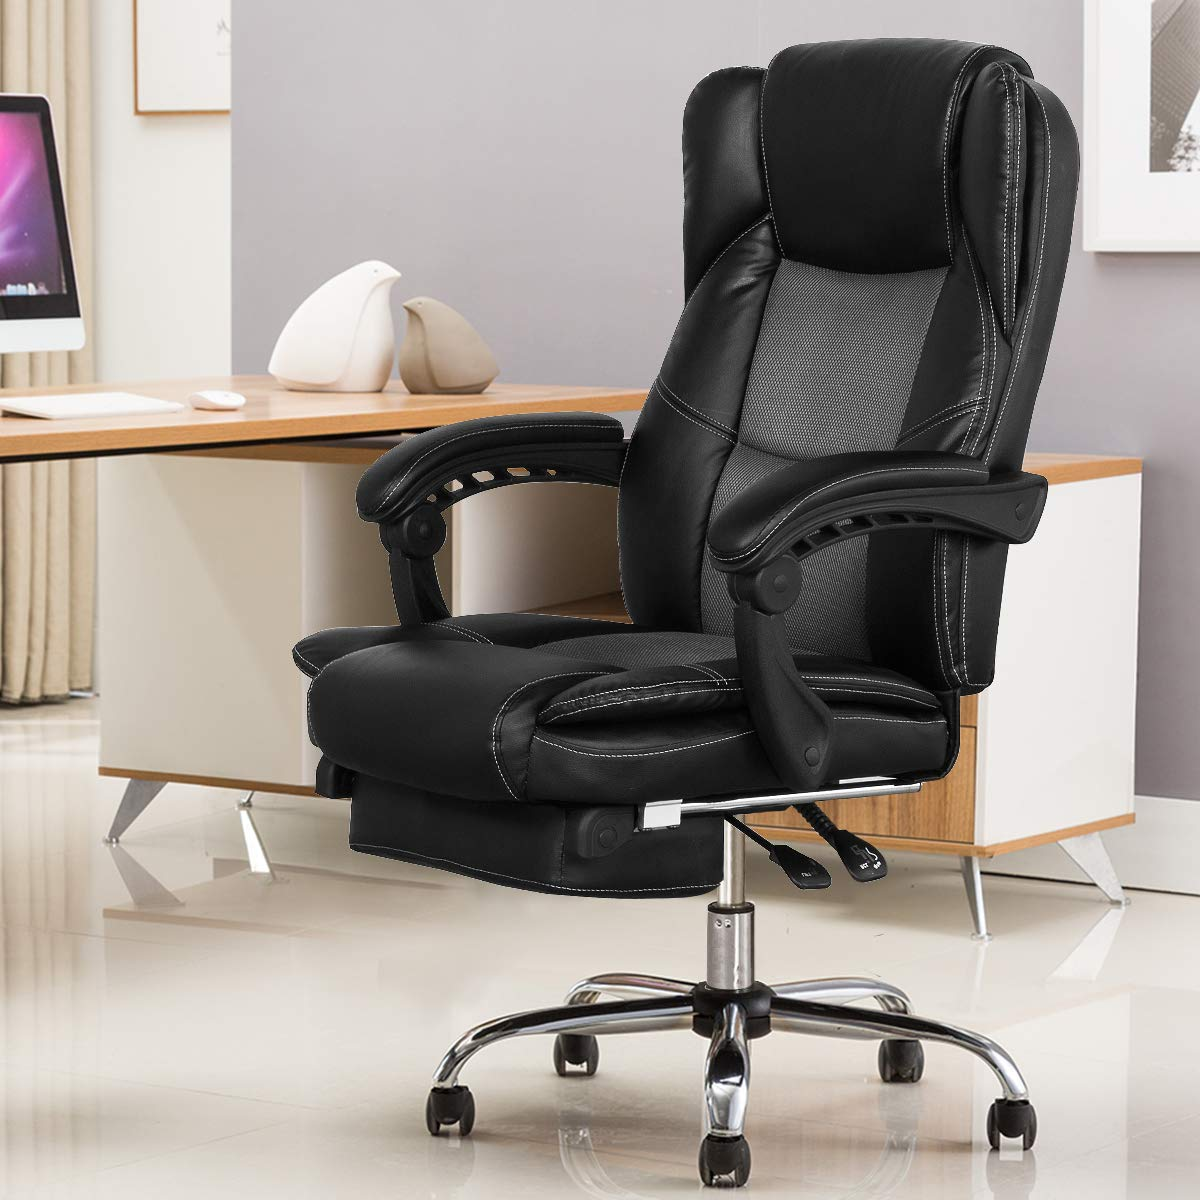 B2C2B Ergonomic Reclining Office Chair High Back Napping Desk Chair Computer Chair Leather Chair with Footrest Large Seat and Lumbar Support 300lbs Black by B2C2B